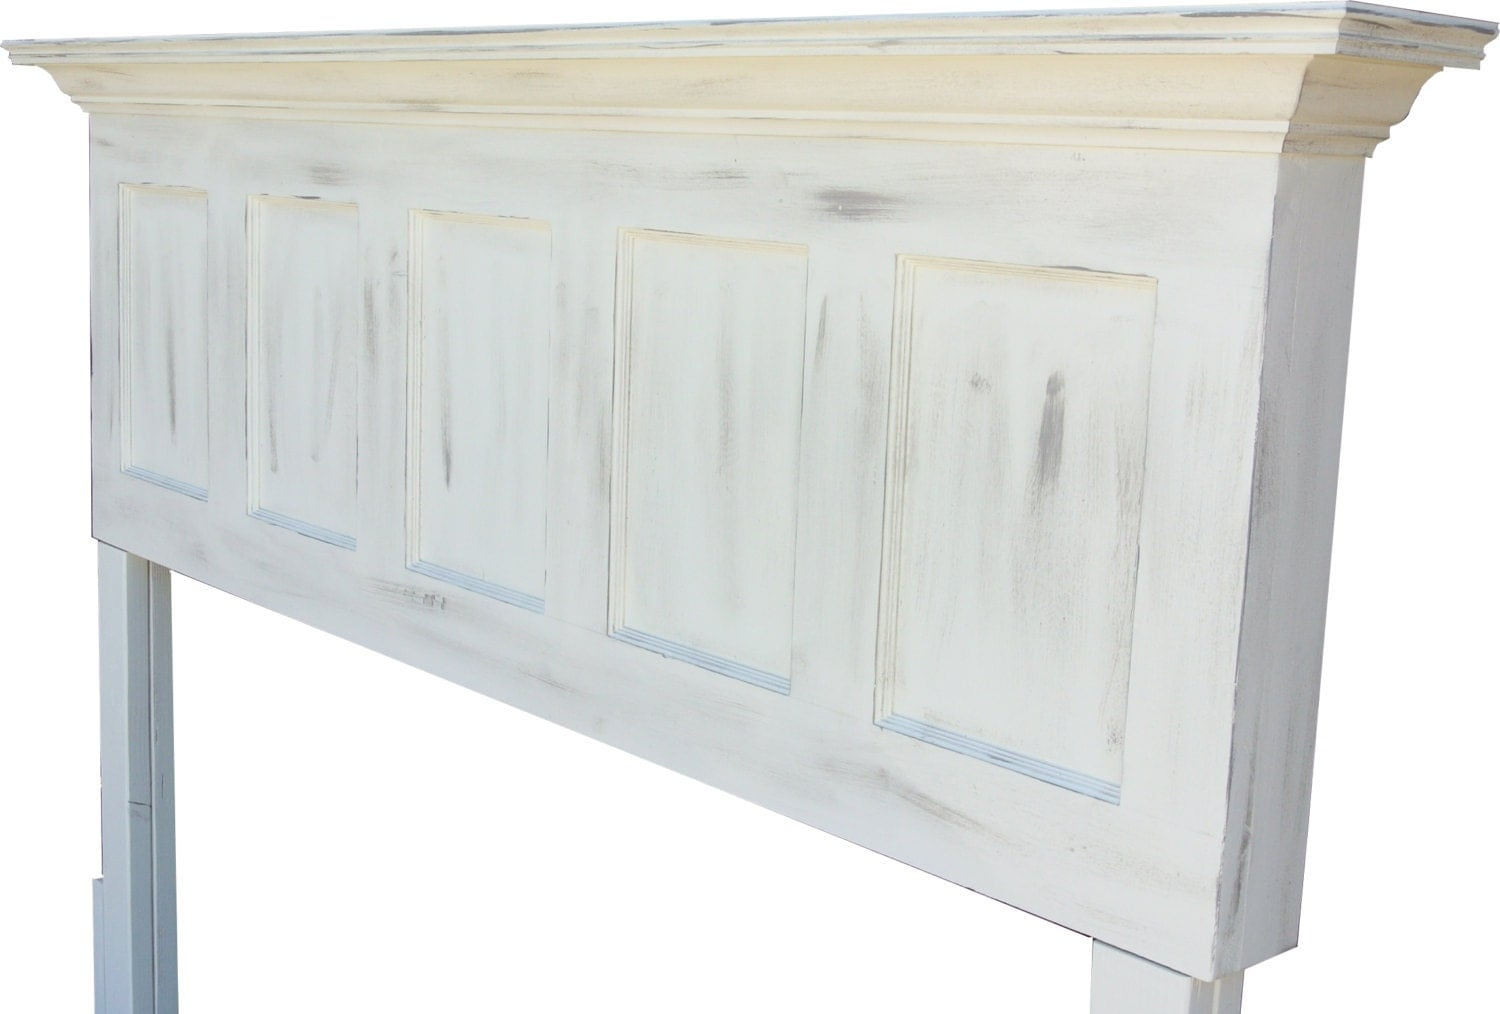 Antique White Or Popcorn White Faux Distressed Door Headboards